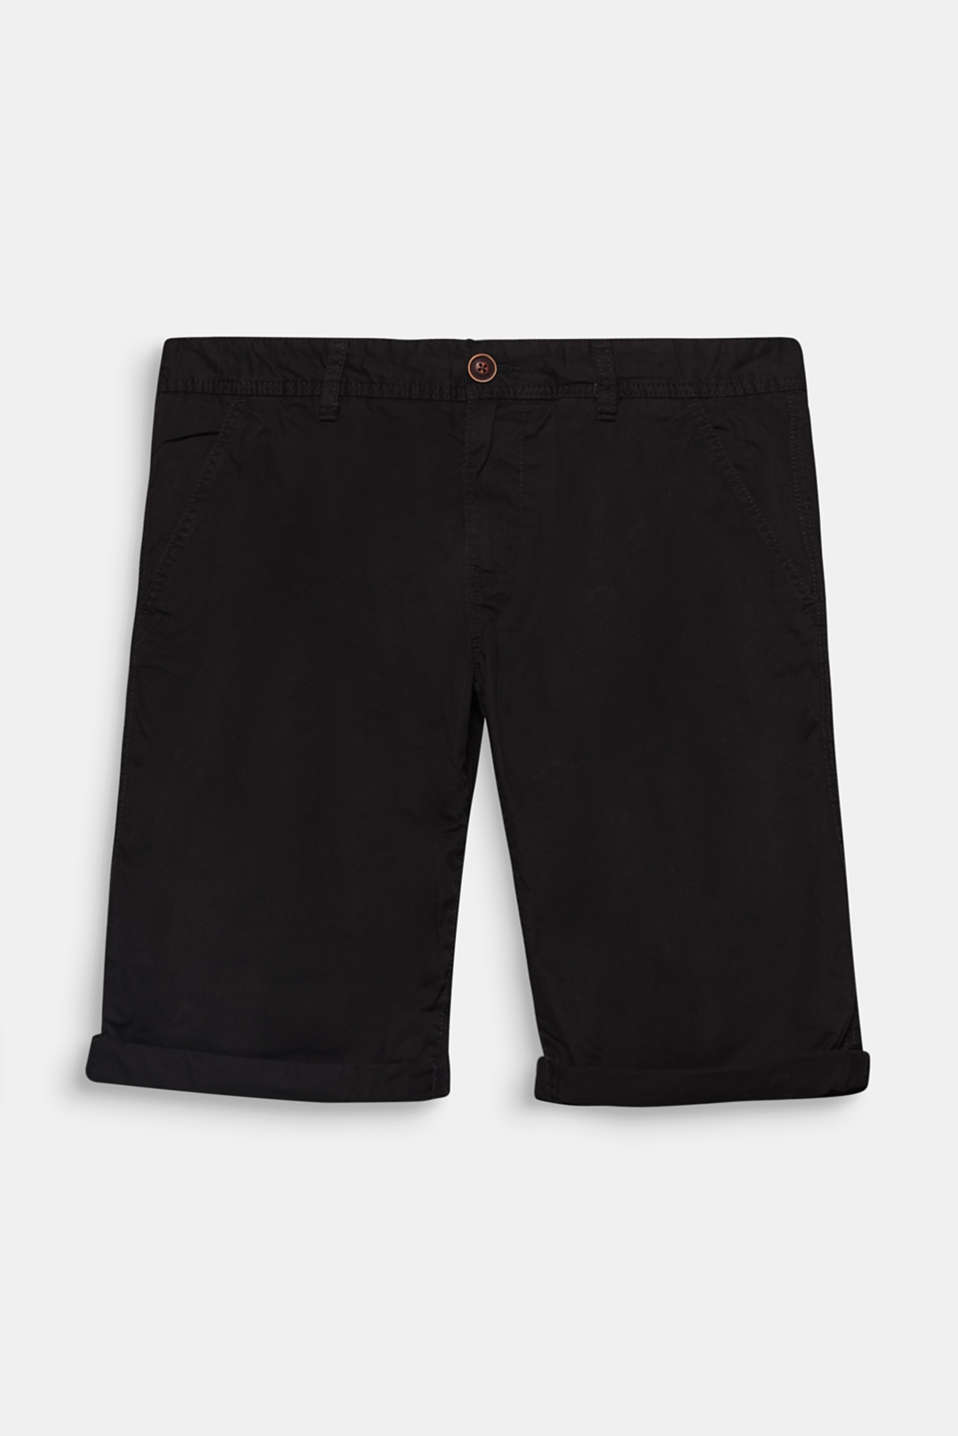 A summer classic: chino shorts. The timeless design is open to lots of different styling ideas.